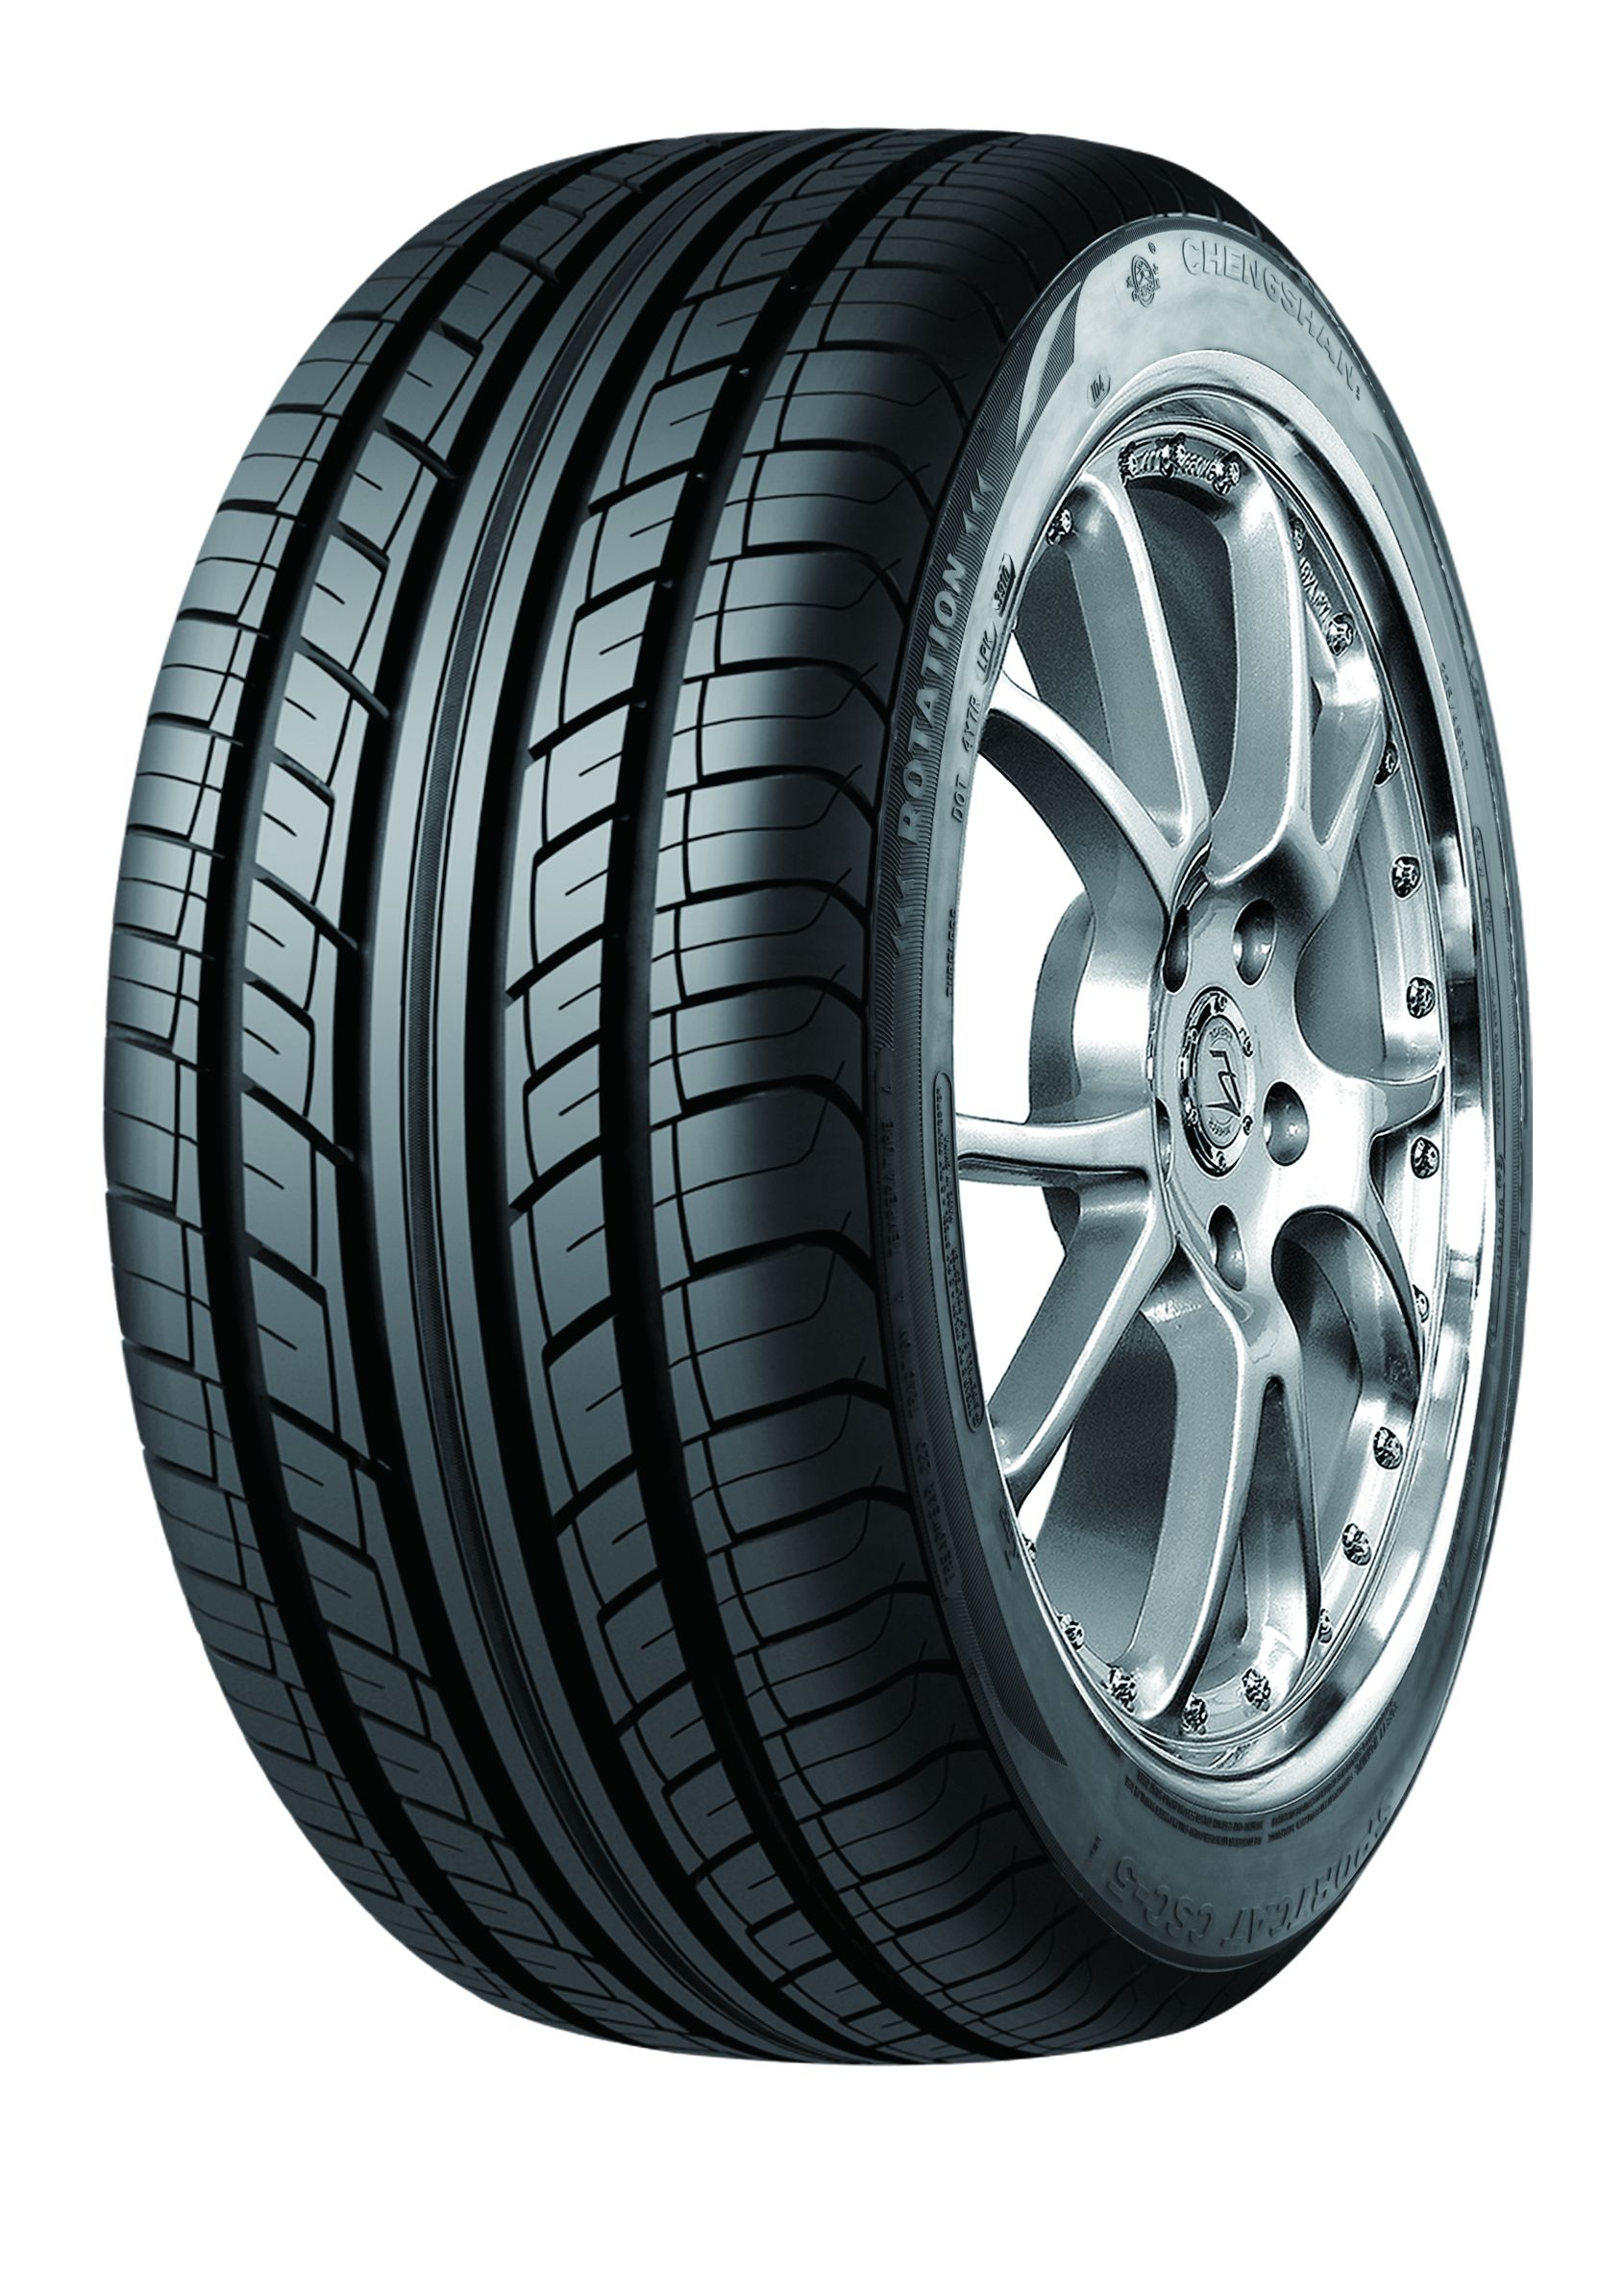 CHENGSHAN CSC5 225/40R18 92Y